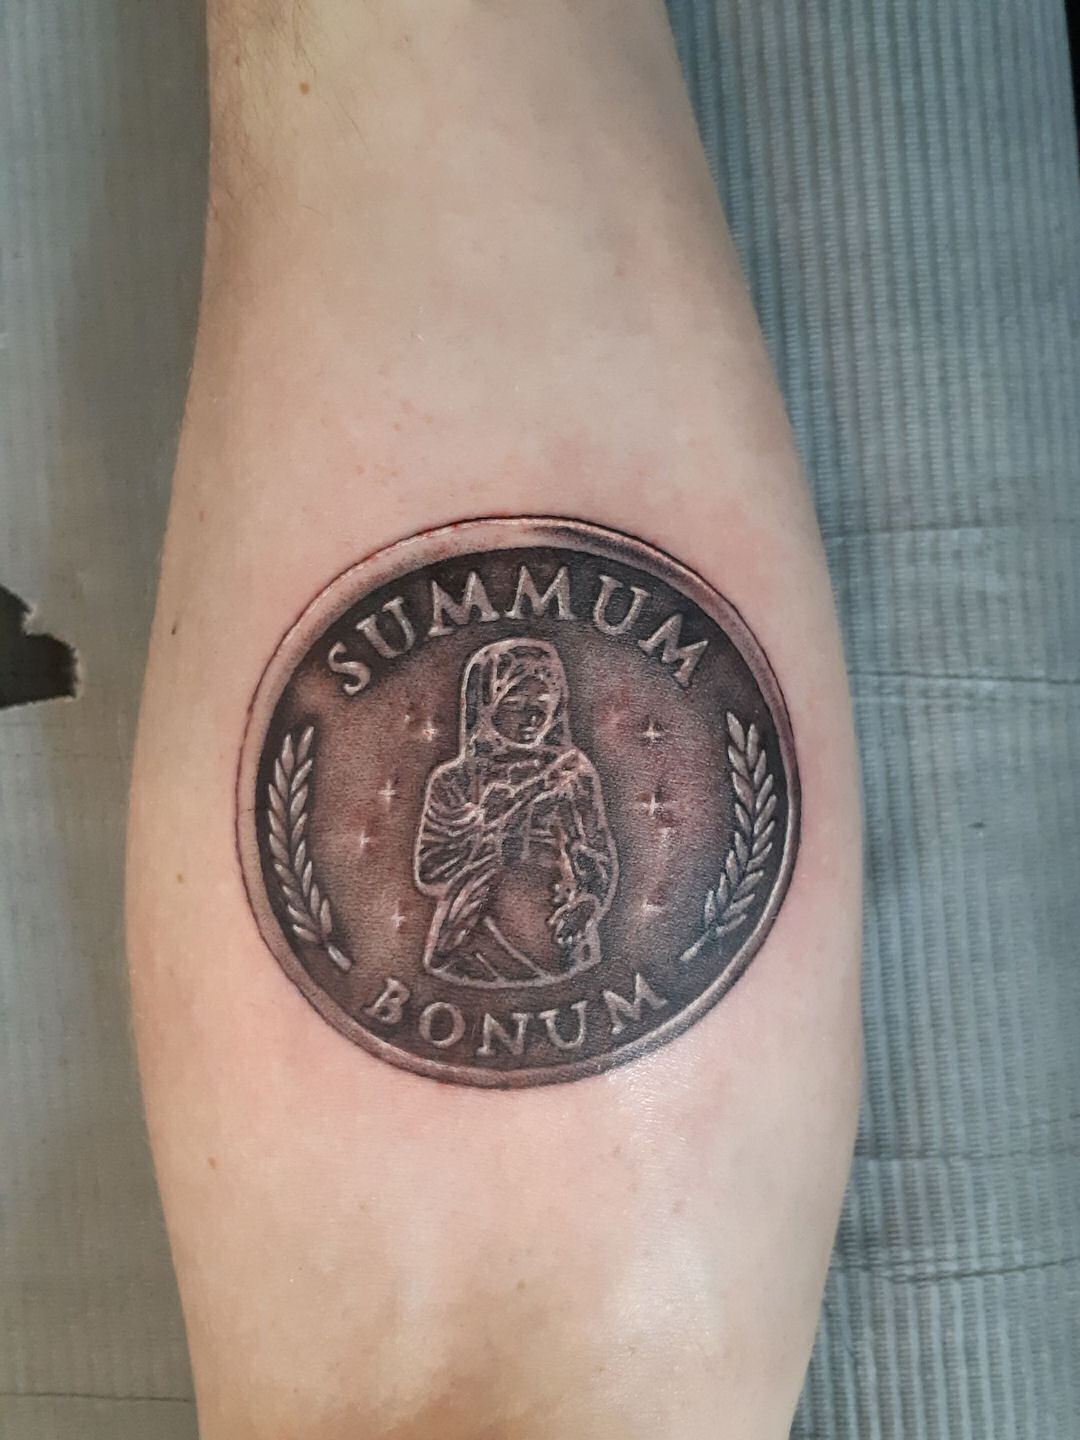 Giant Coin — Clay Walker Tattoo